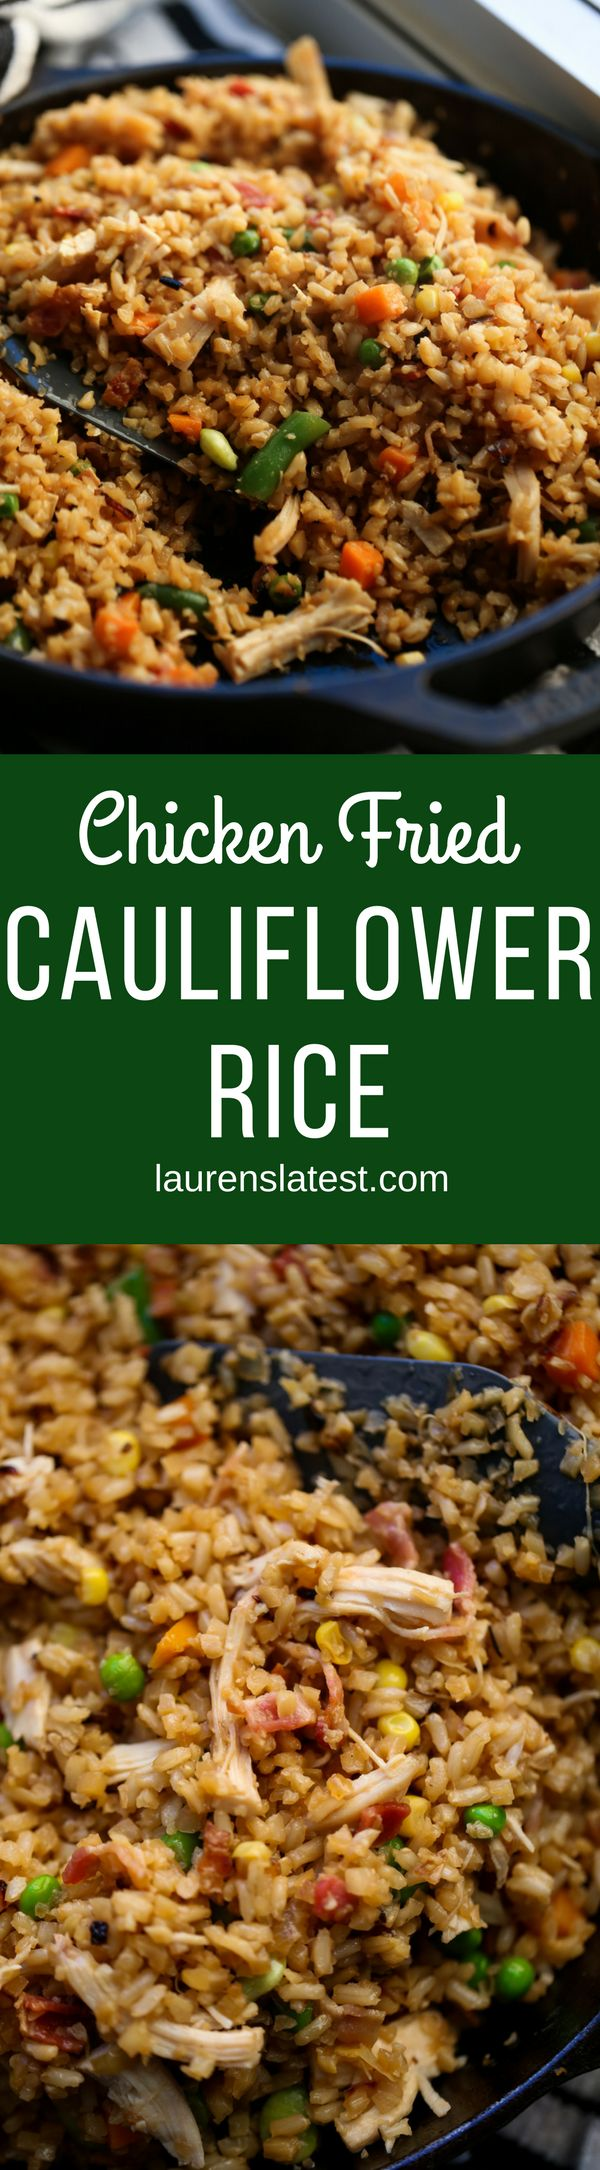 Chicken Fried Cauliflower Rice is a healthy, clean take on the original fried rice recipe that comes together in 10 minutes and tastes amazing!